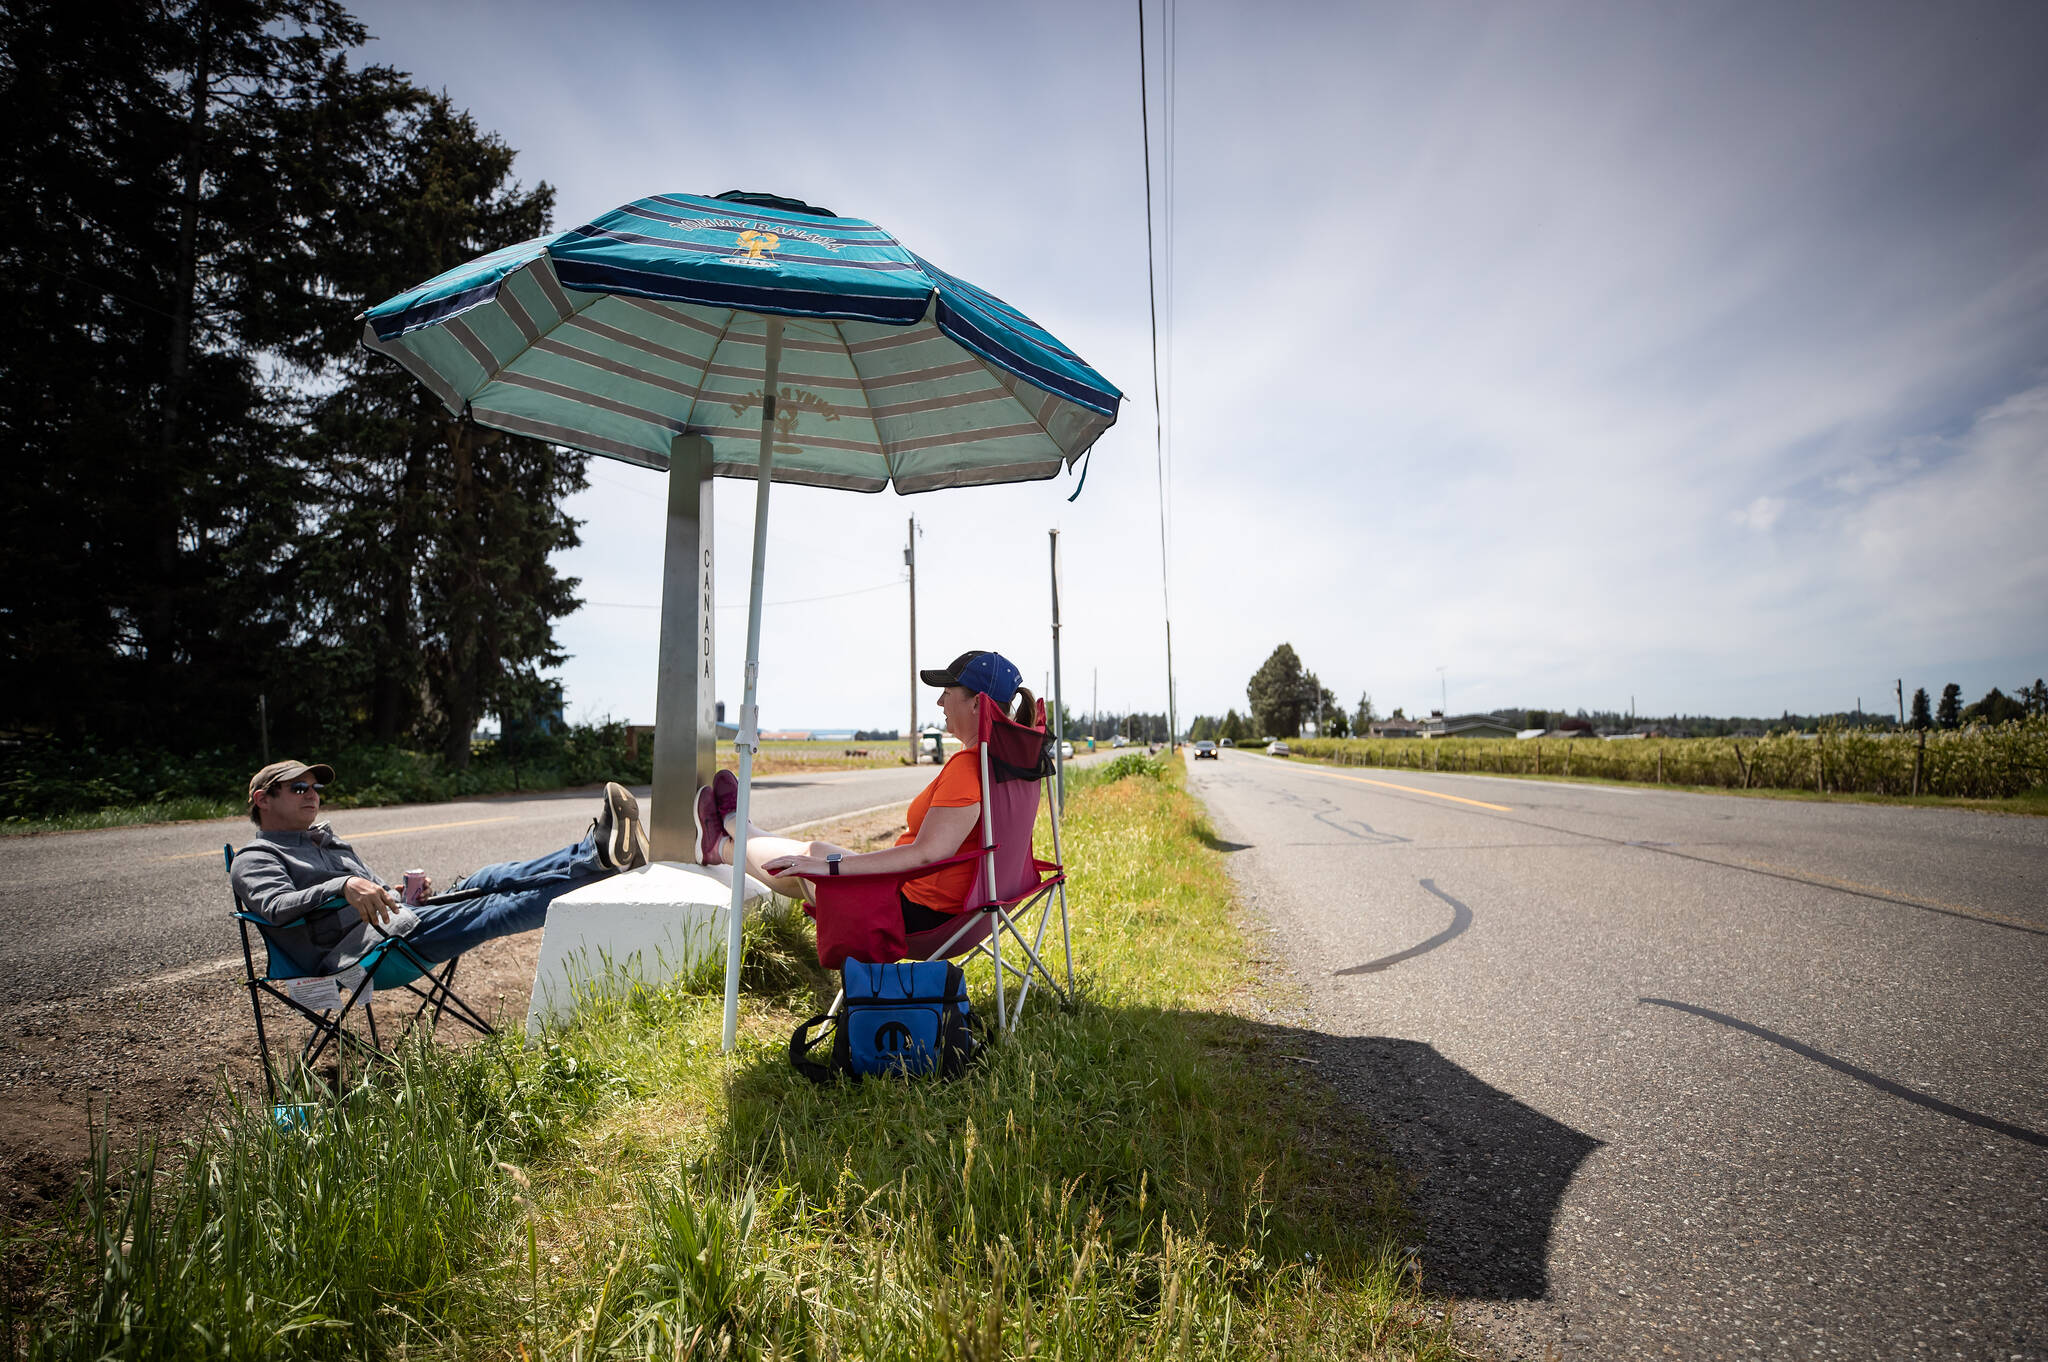 Engaged couple Rob Sensel, left, of Mount Vernon, Wash., and Kathryn Bell Lewis, of Richmond, B.C., spend time together separated by a ditch along the Canada-U.S. border, in Abbotsford, B.C., on Sunday, May 10, 2020. The closure of the Canada-U.S. border to non-essential travel has been extended another month, the U.S. announced Sept. 20. THE CANADIAN PRESS/Darryl Dyck